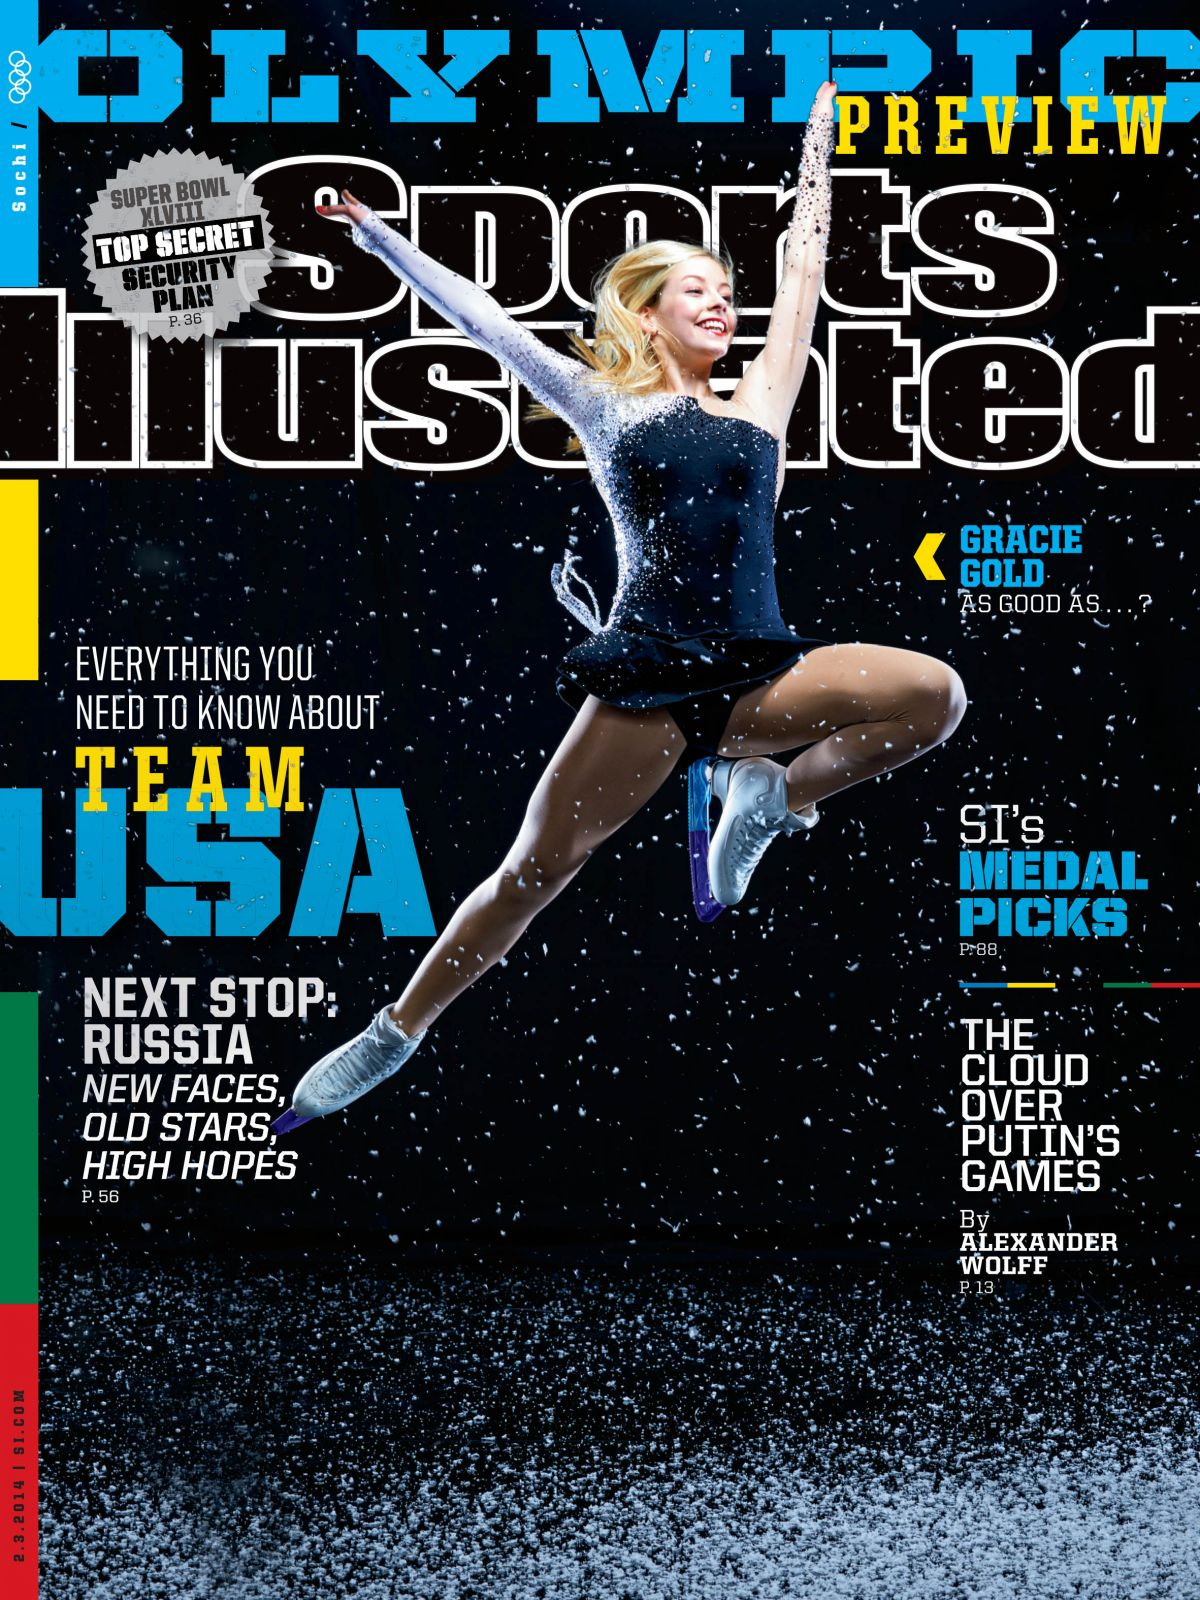 GRACIE GOLD on the Cover of Sports Illustrated Magazine, February 2014 Issue